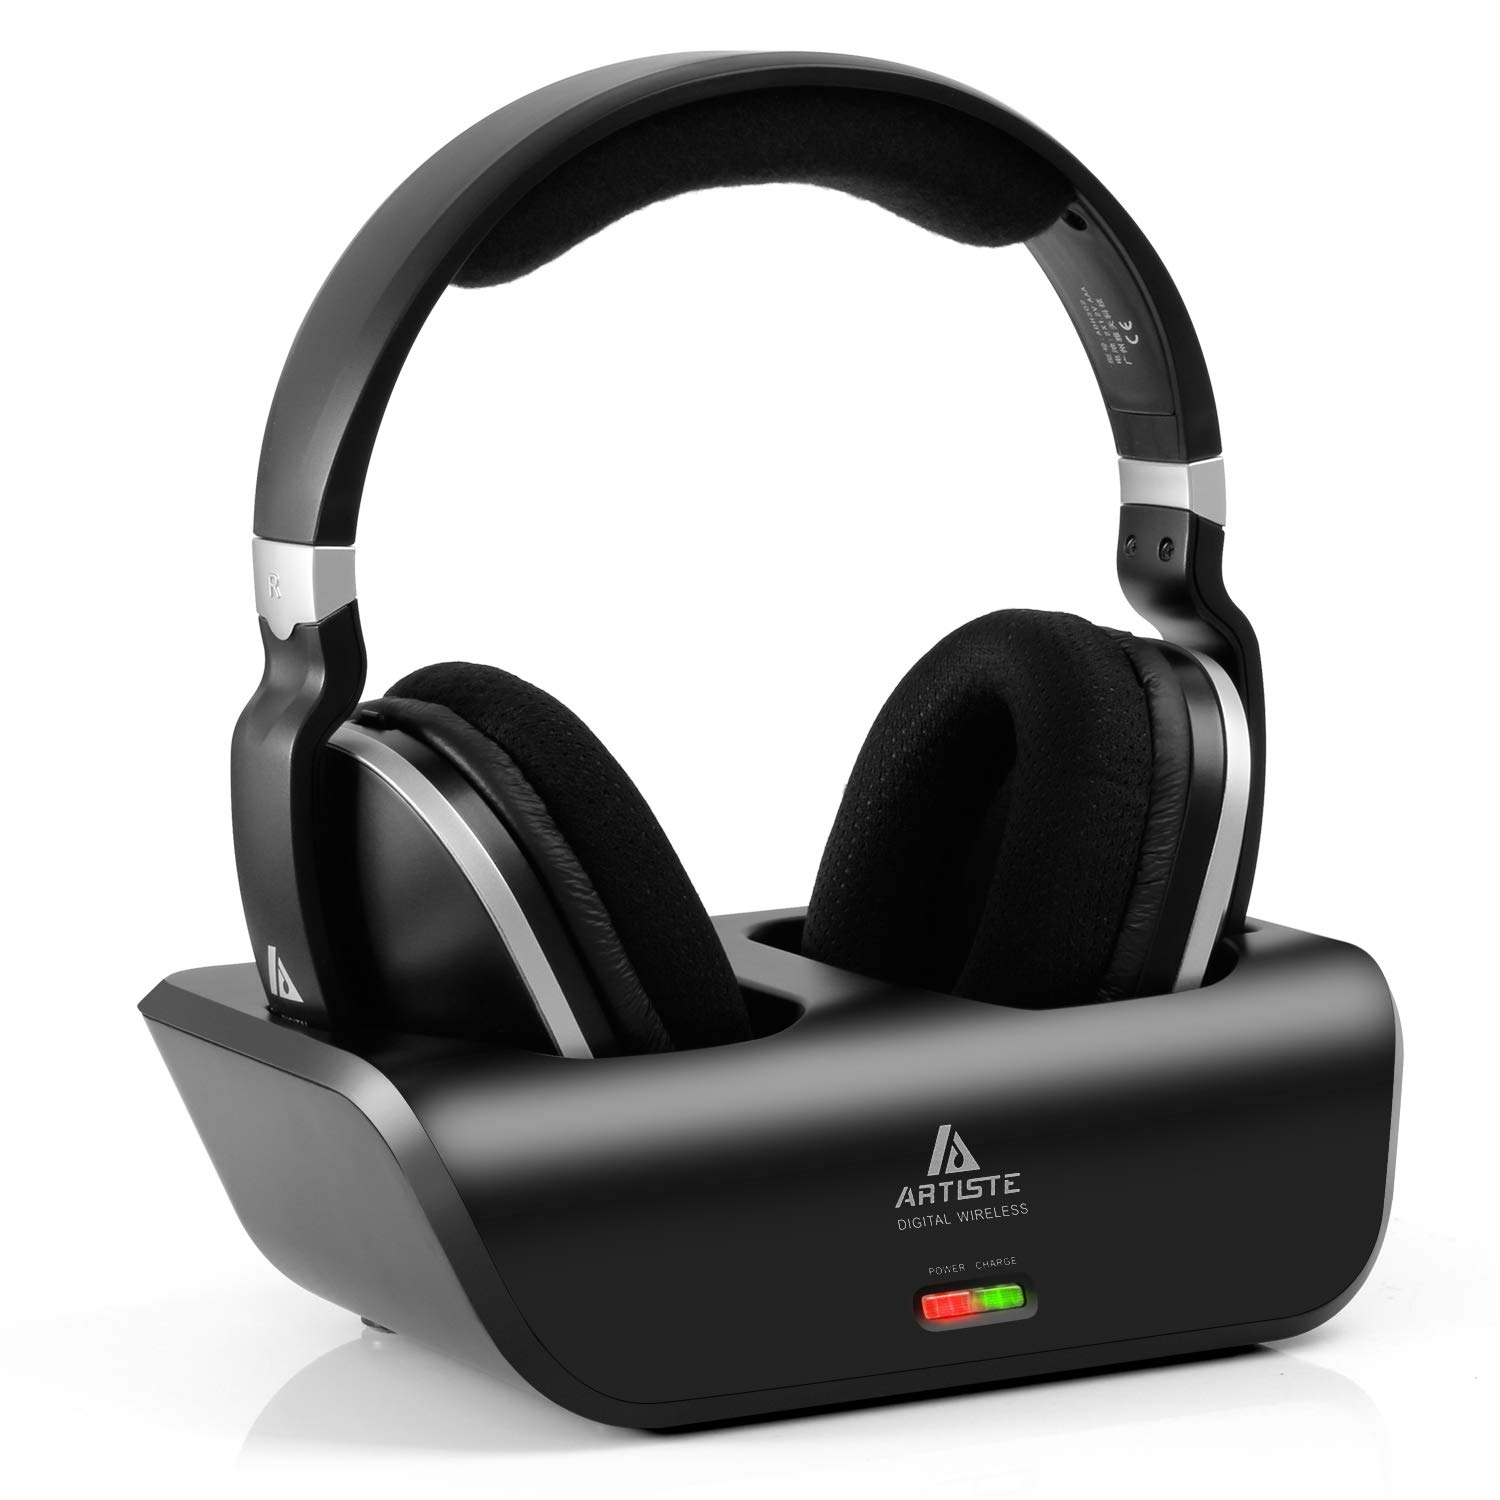 Auriculares ARTISTE Inalambrico TV Over-Ear Headsets - Digital Stereo Headsets con 2.4GHz RF Transmisor Charging Dock 10